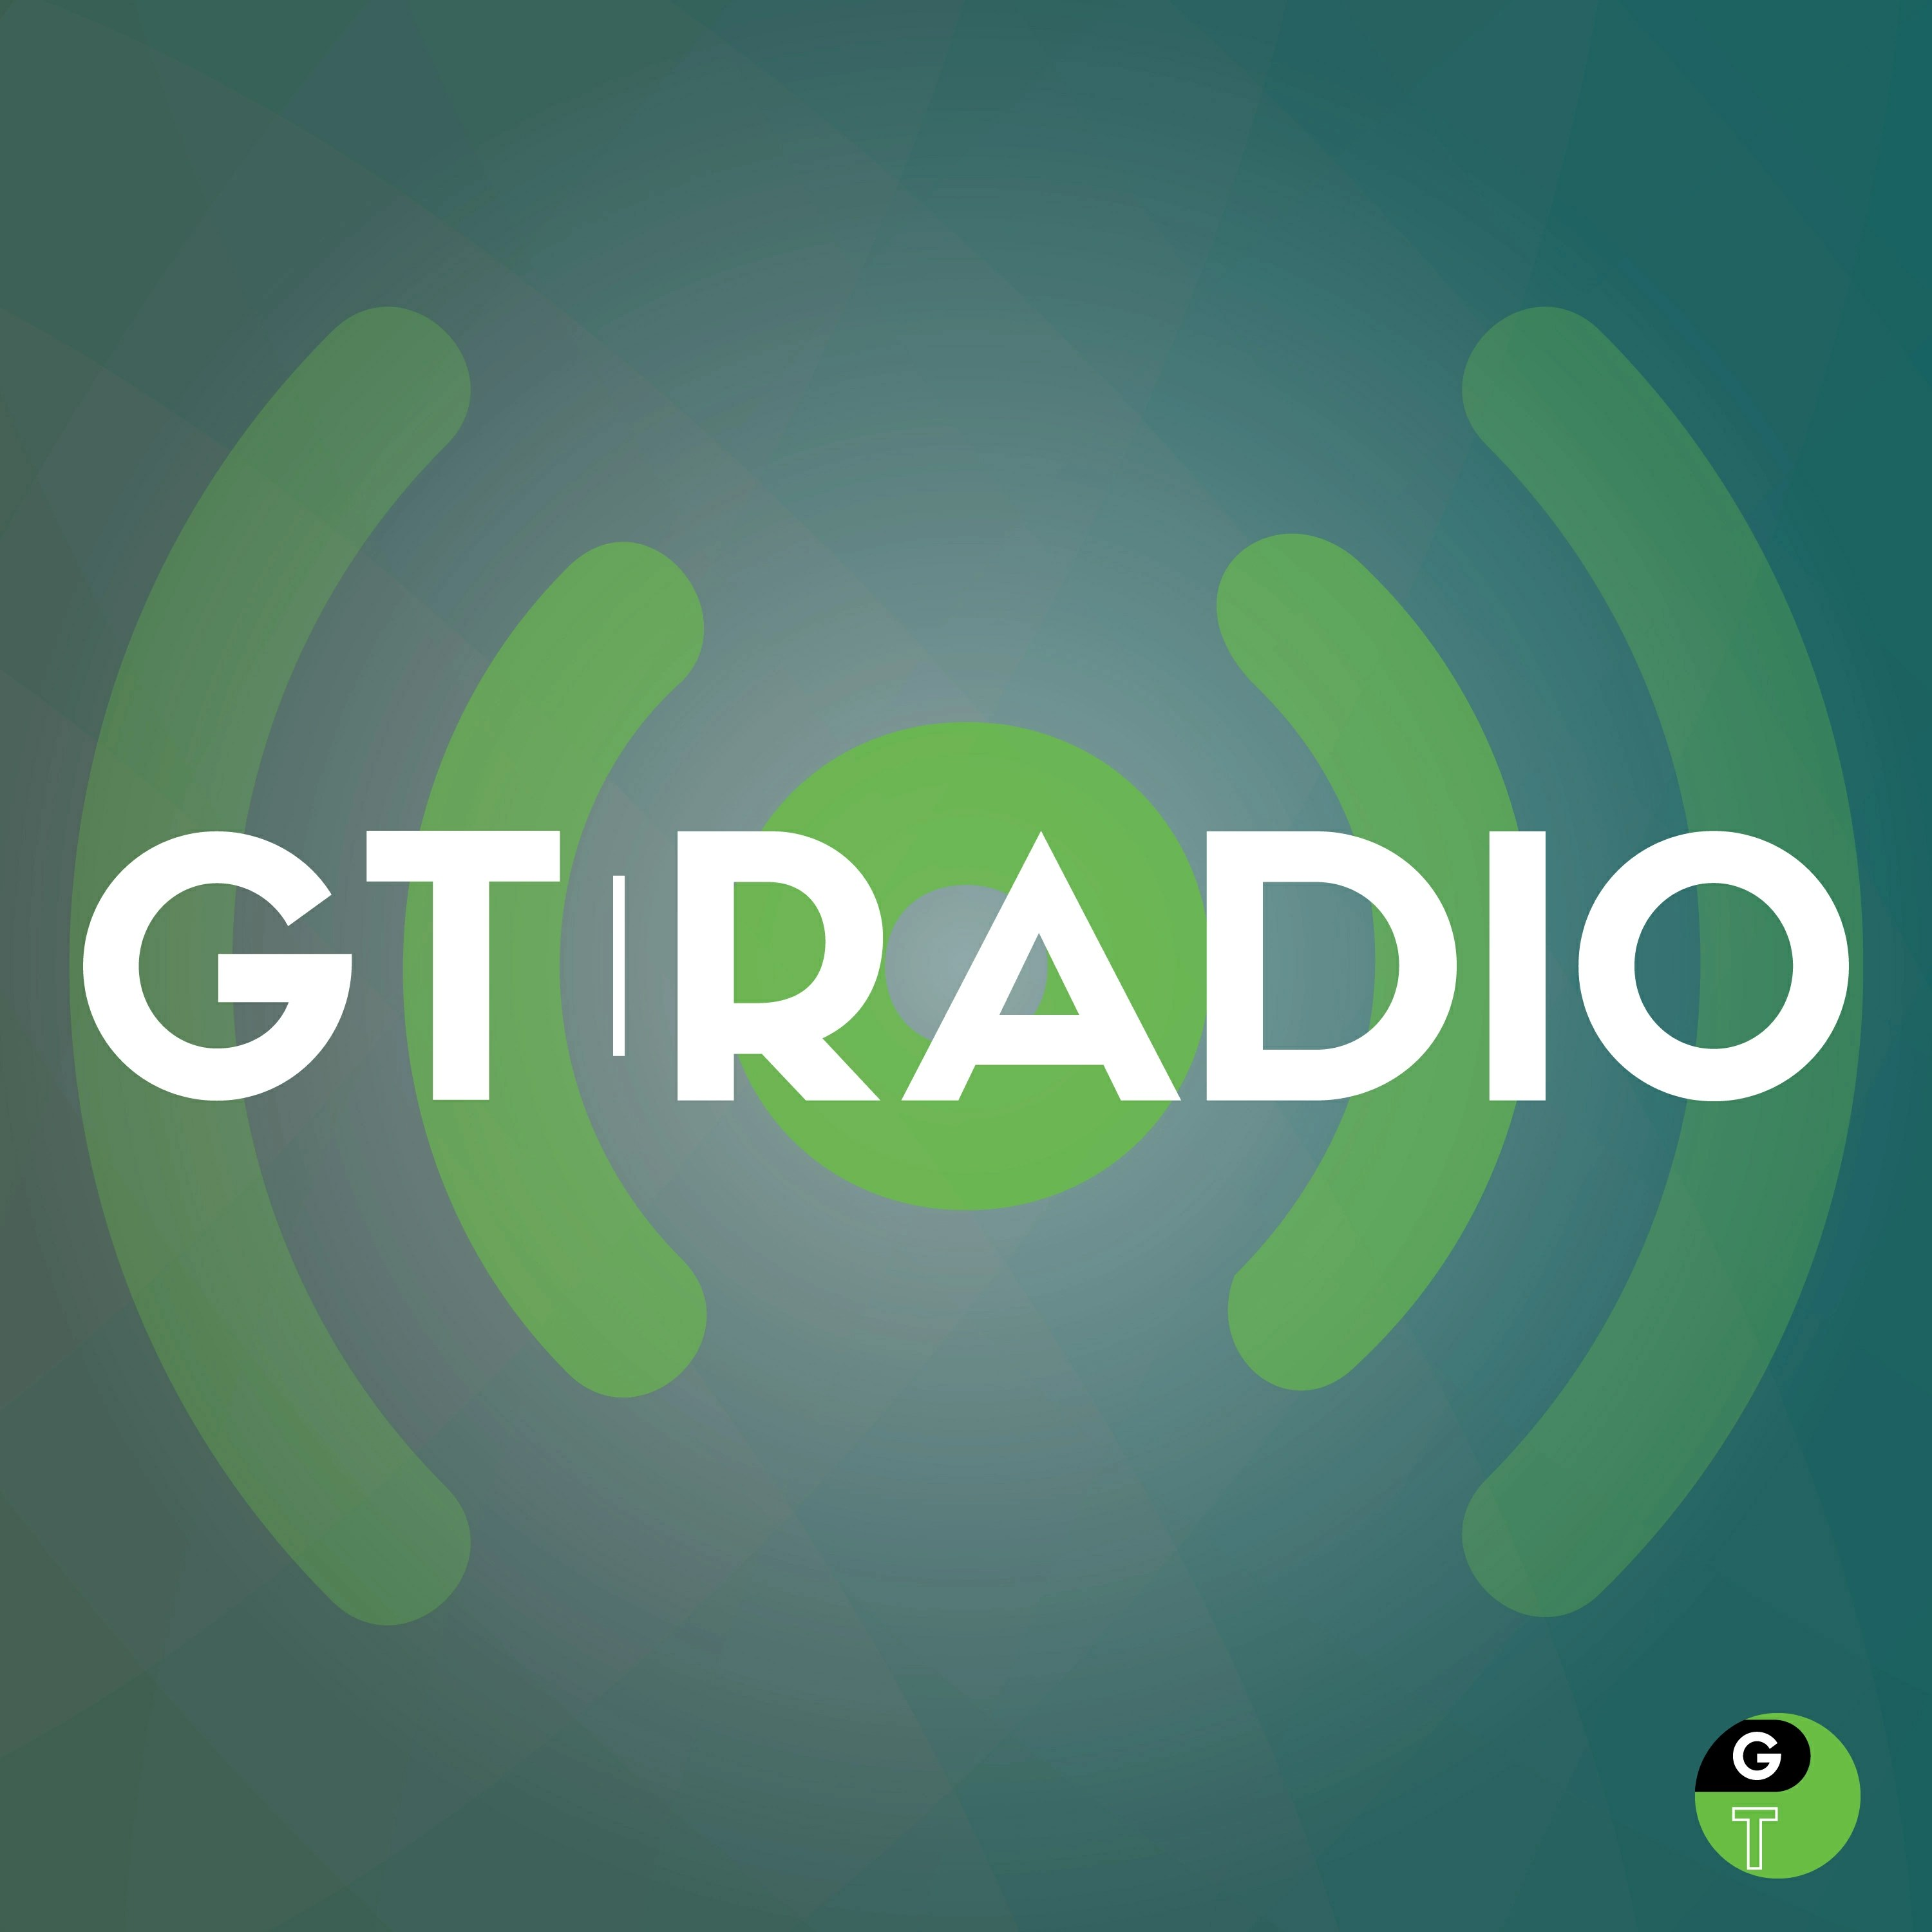 GT Radio - The Geek Therapy Podcast